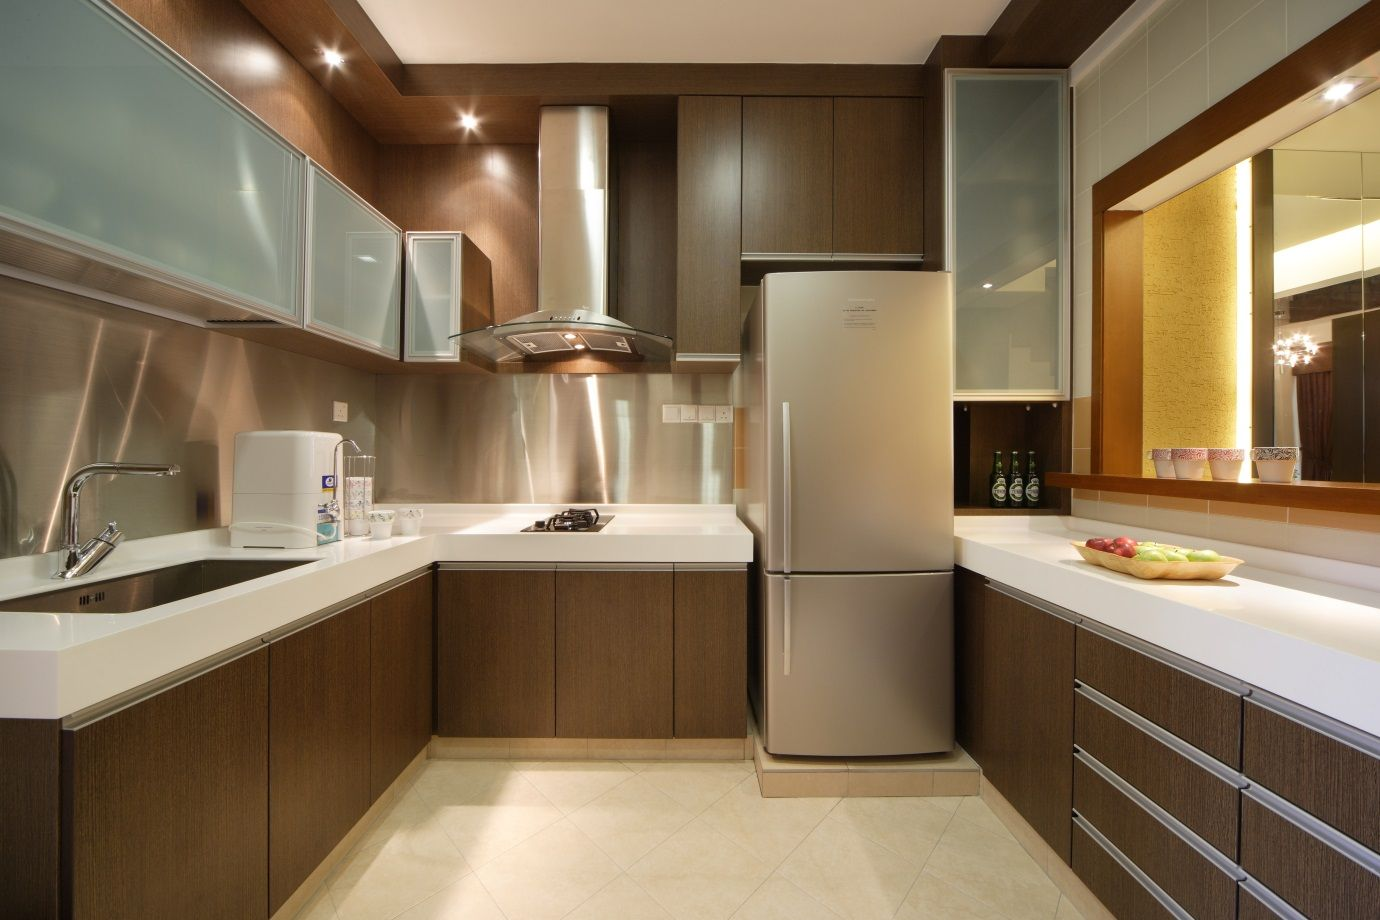 Malaysia modern kitchen cabinet design google search Kitchen interior design